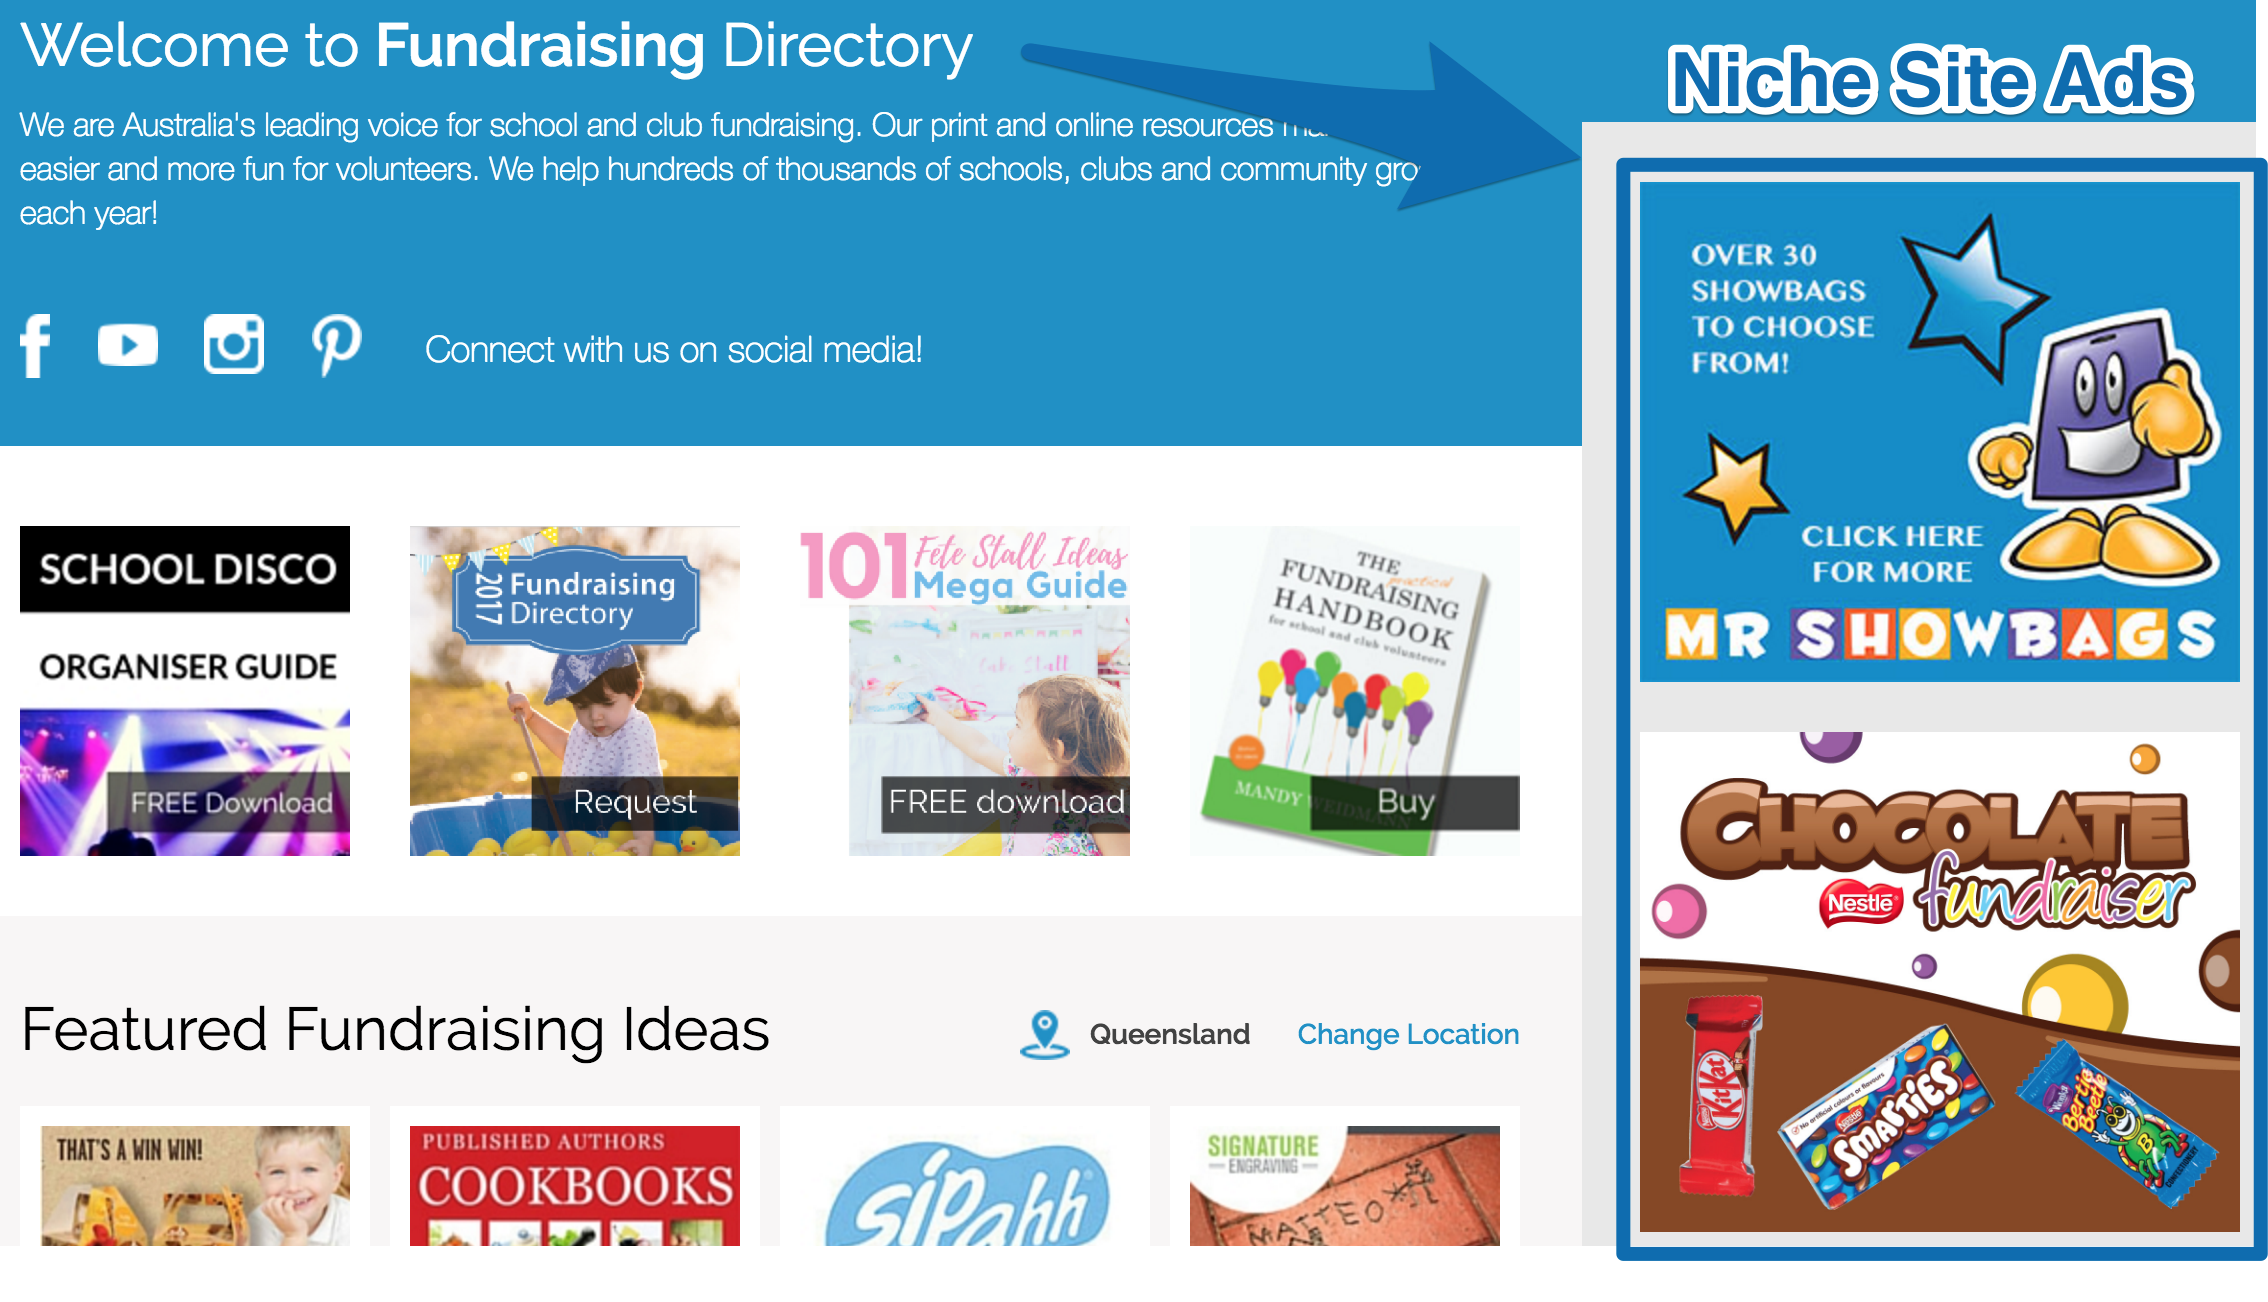 Screenshot of the fundraising category and niche site ads on a website